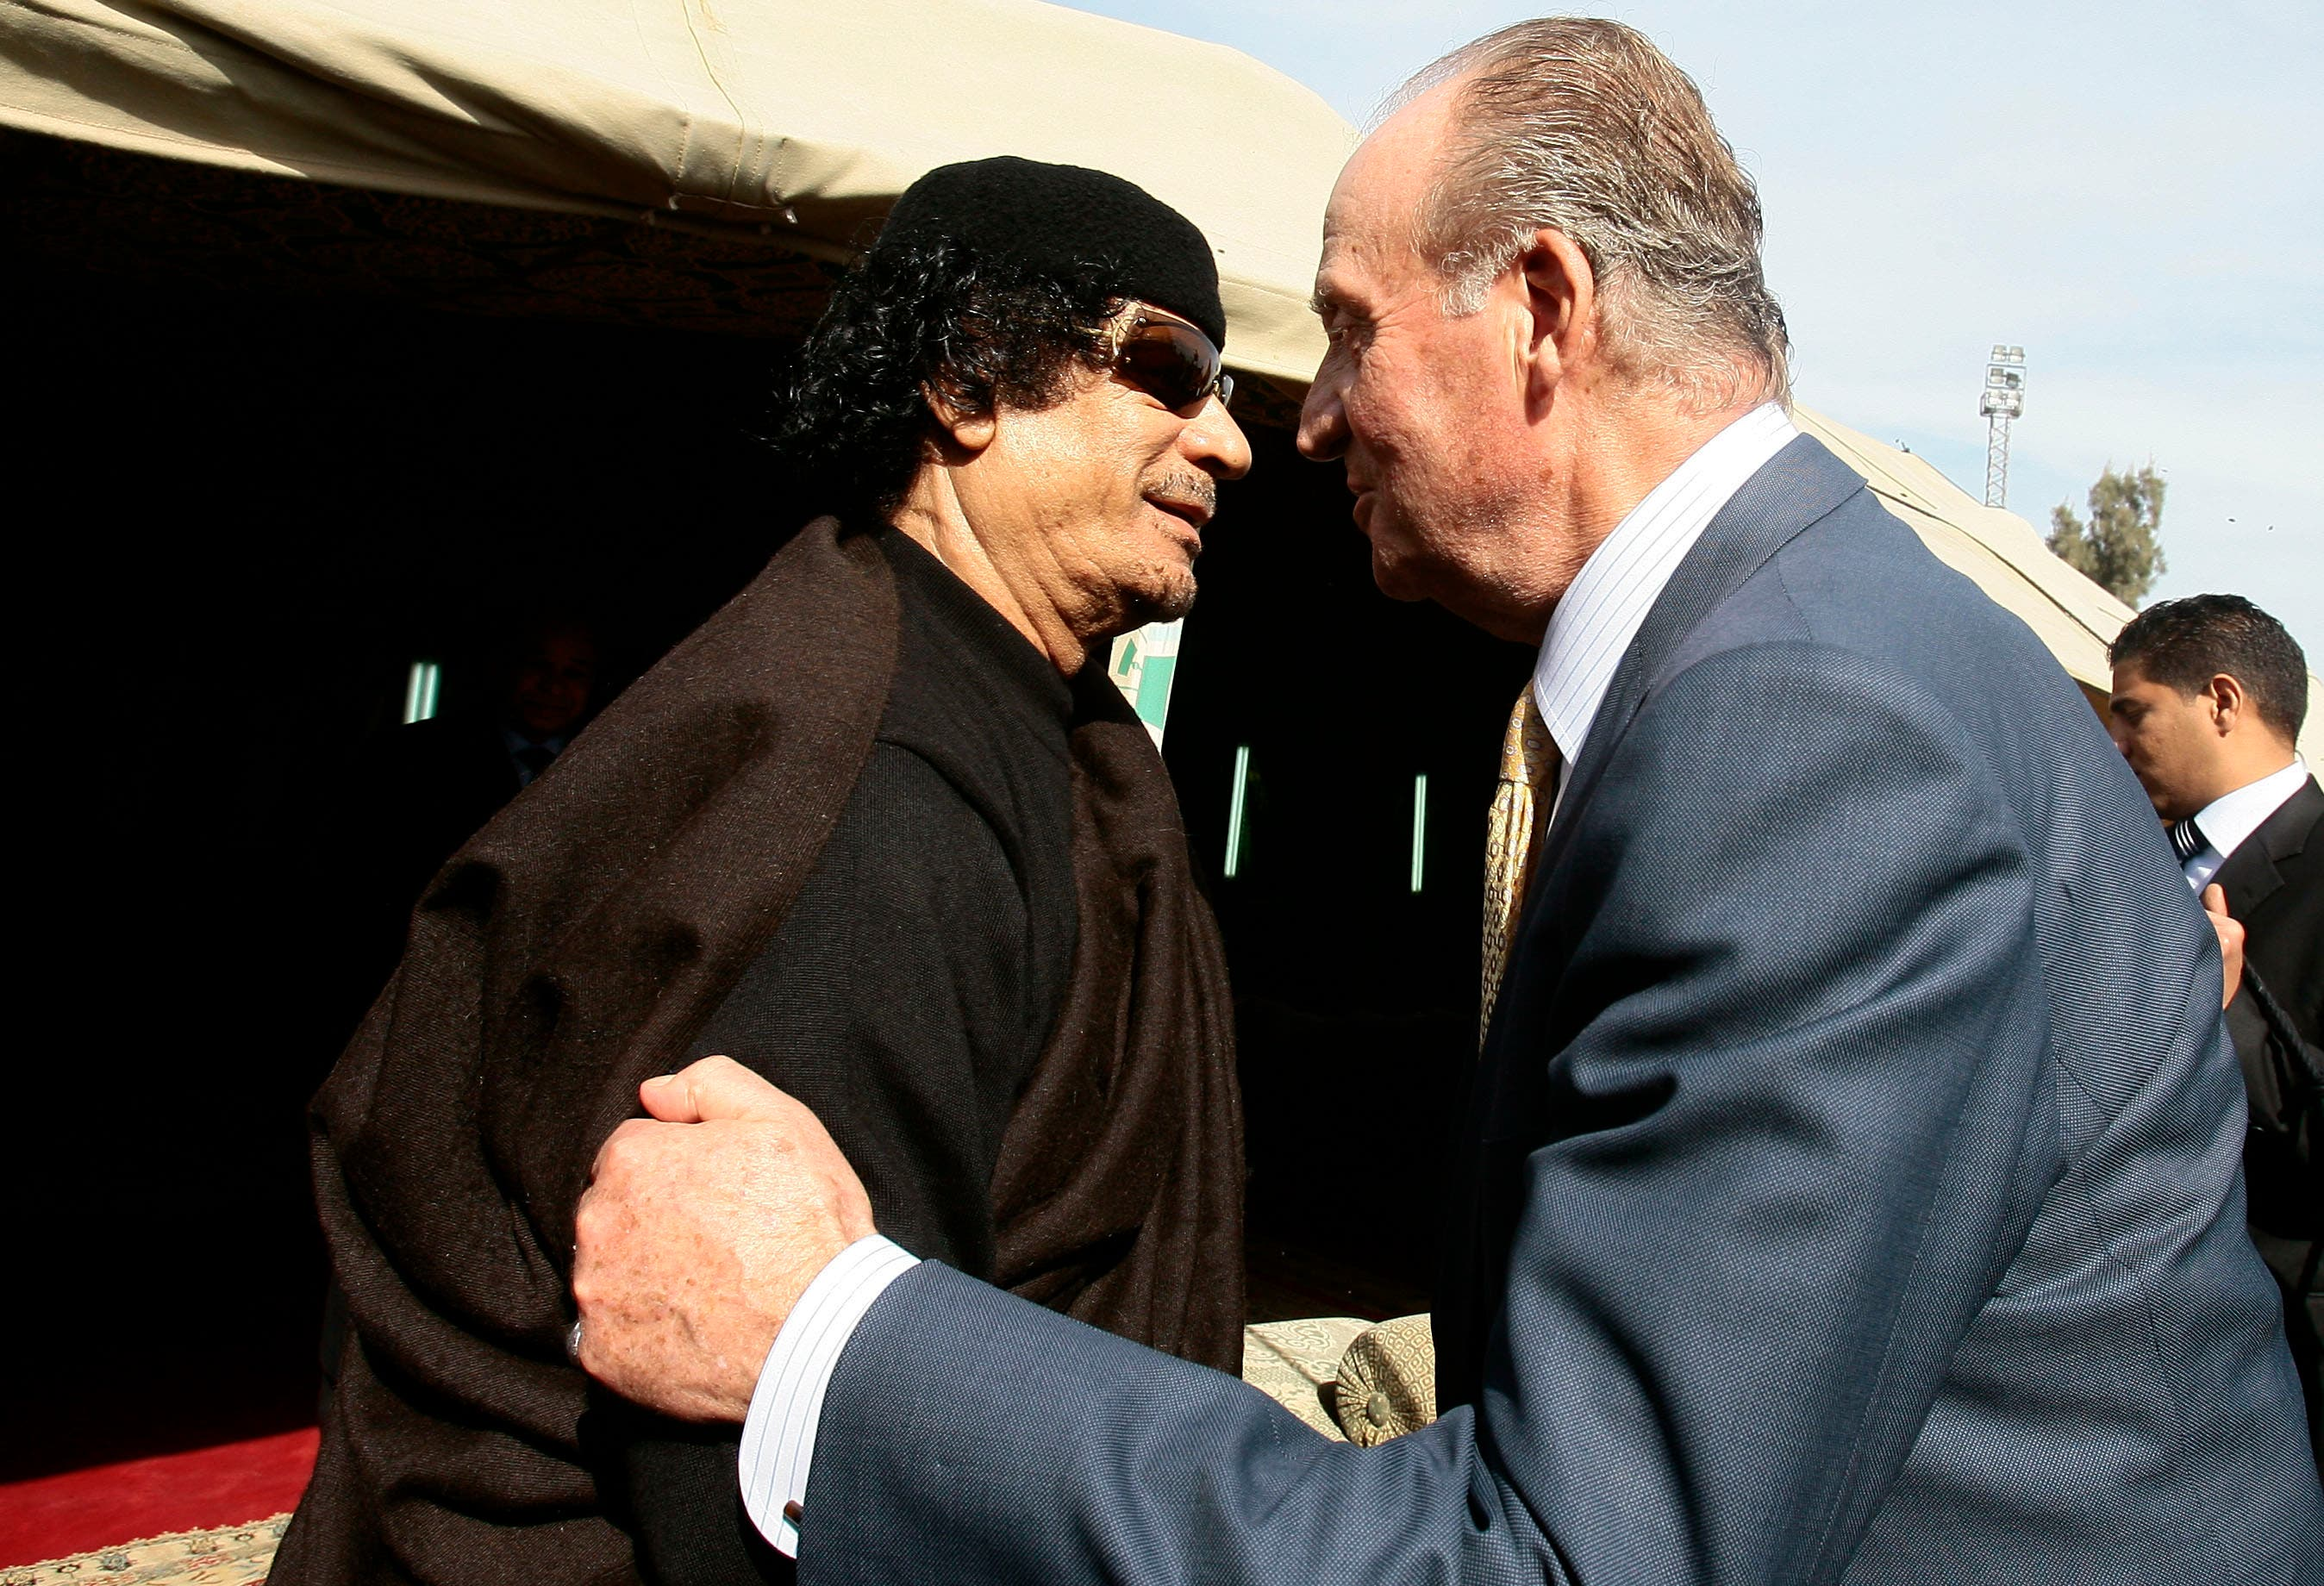 Libya's leader Muammar Gaddafi (L) welcomes Spain's King Juan Carlos at his tent in Tripoli January 24, 2009. (Reuters)